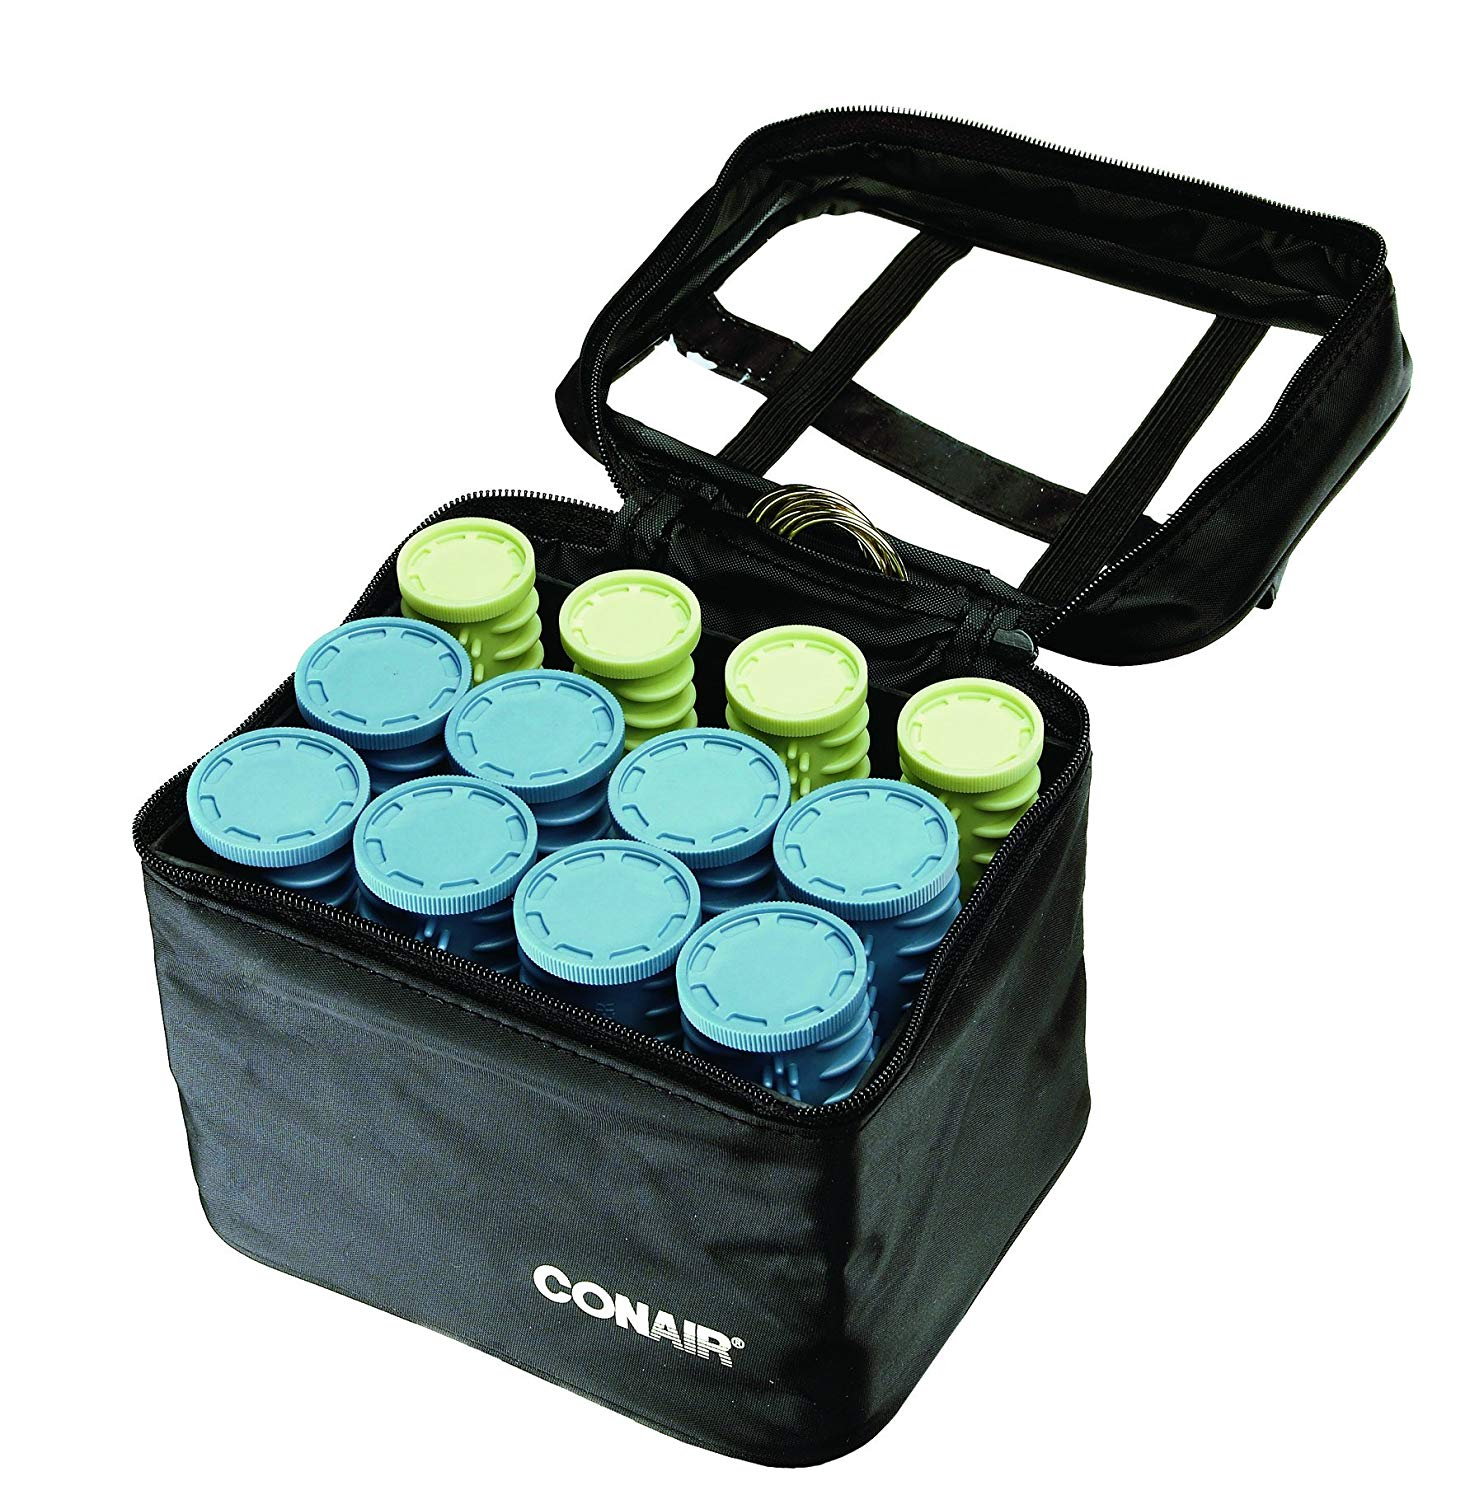 Instant Heat Compact Hot Rollers w/Ceramic Techology; Black Case with Blue and Green Rollers Conair